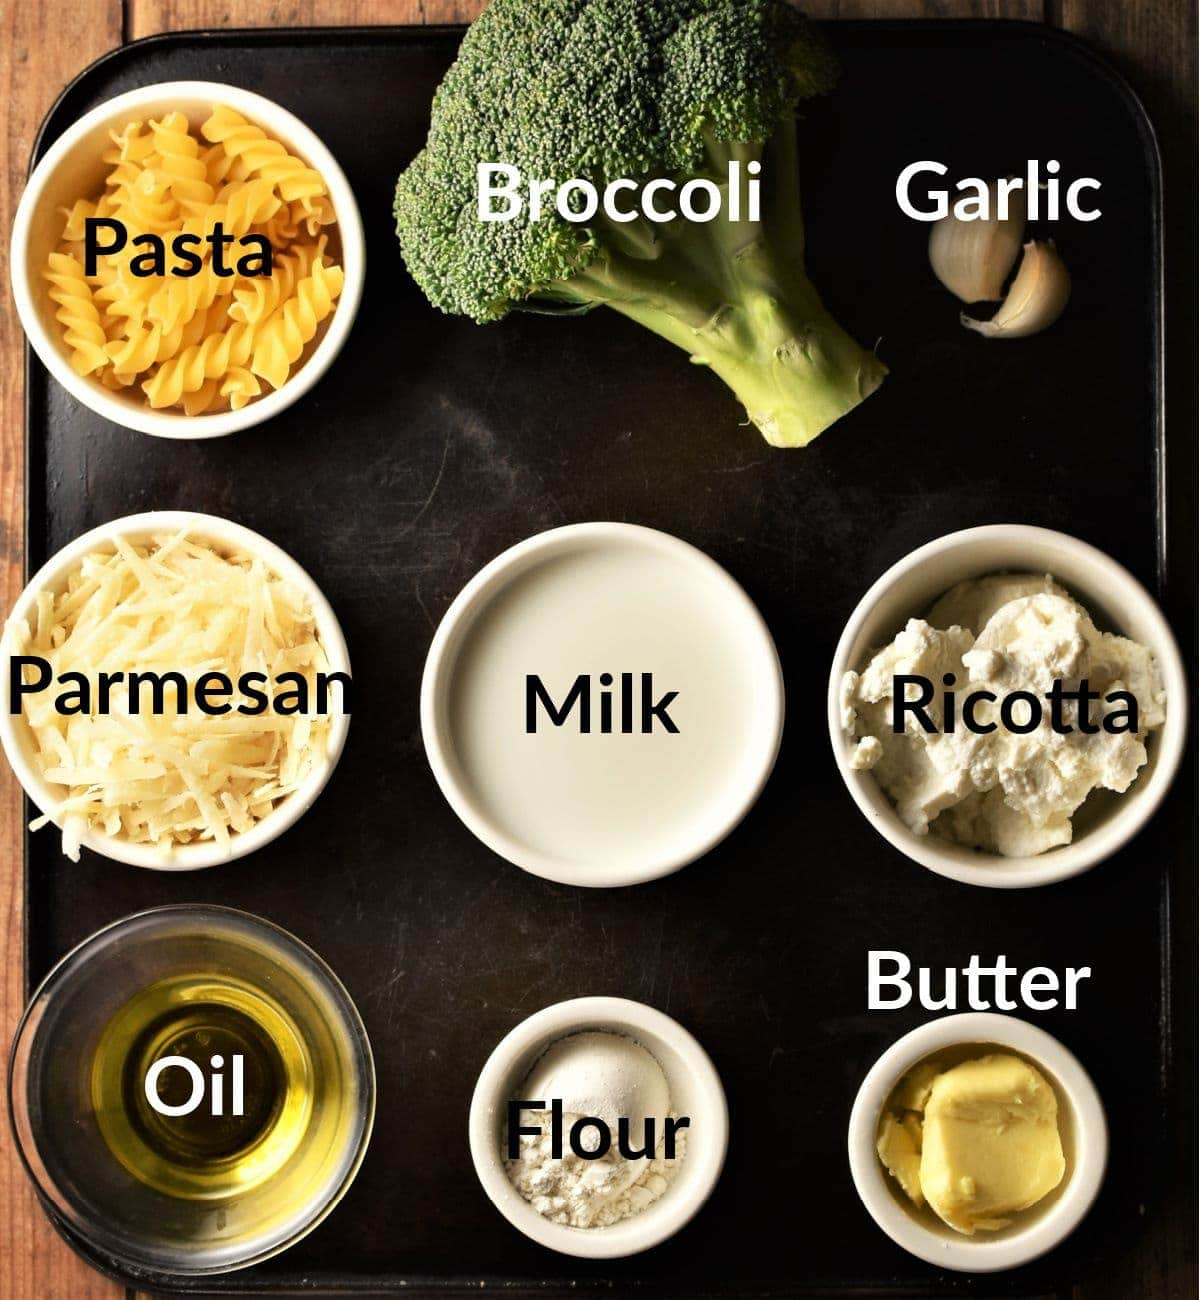 Pasta and broccoli recipe ingredients in individual dishes.